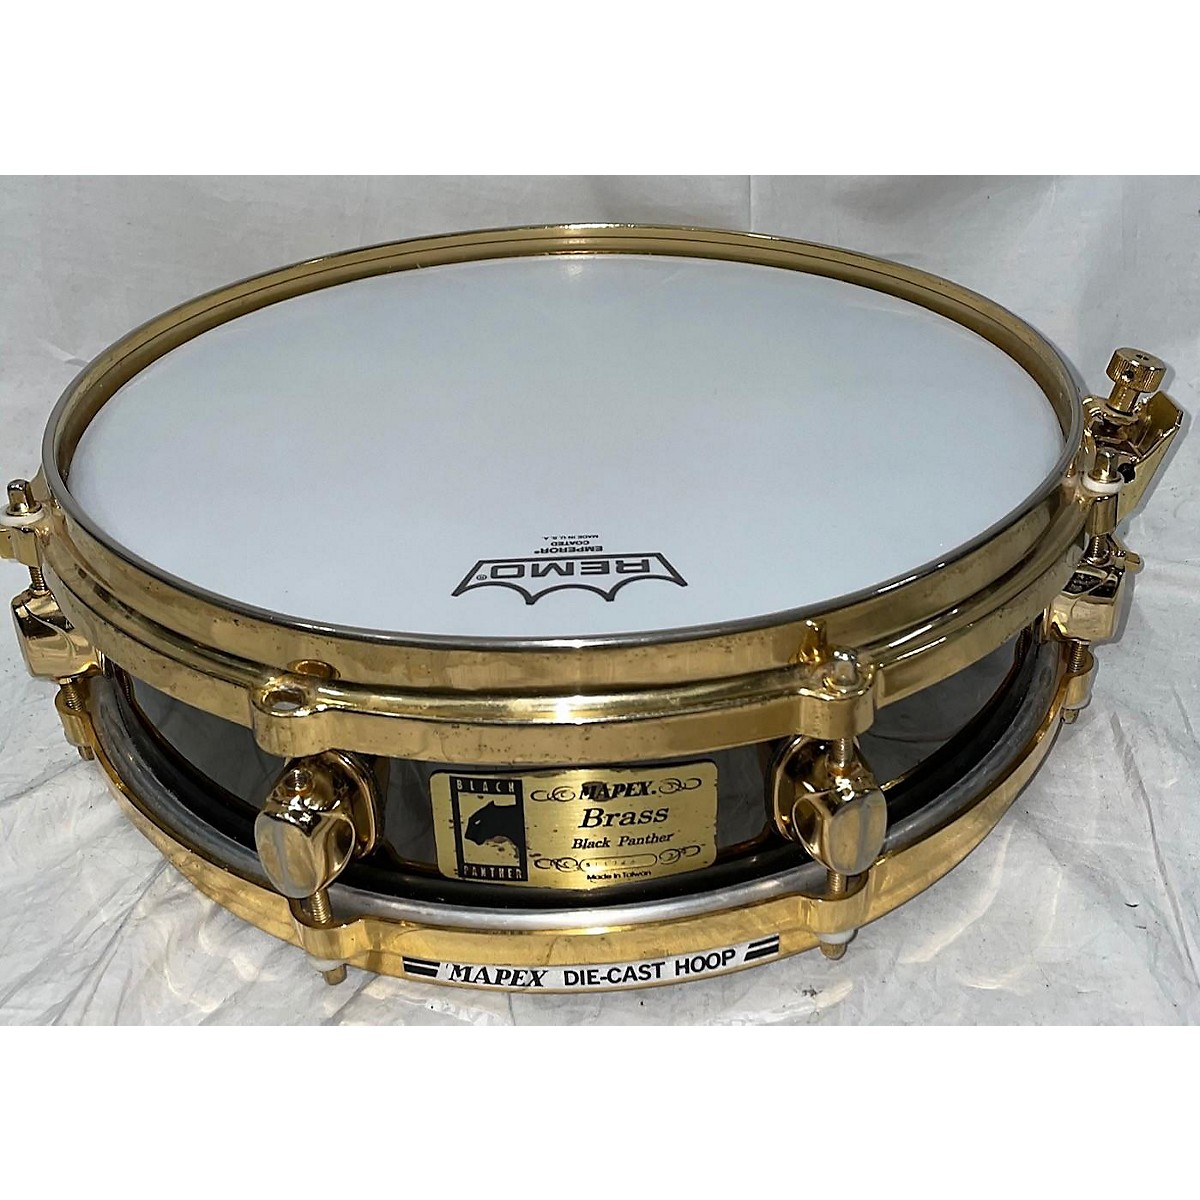 Mapex 13X5 Black Panther Brass Drum